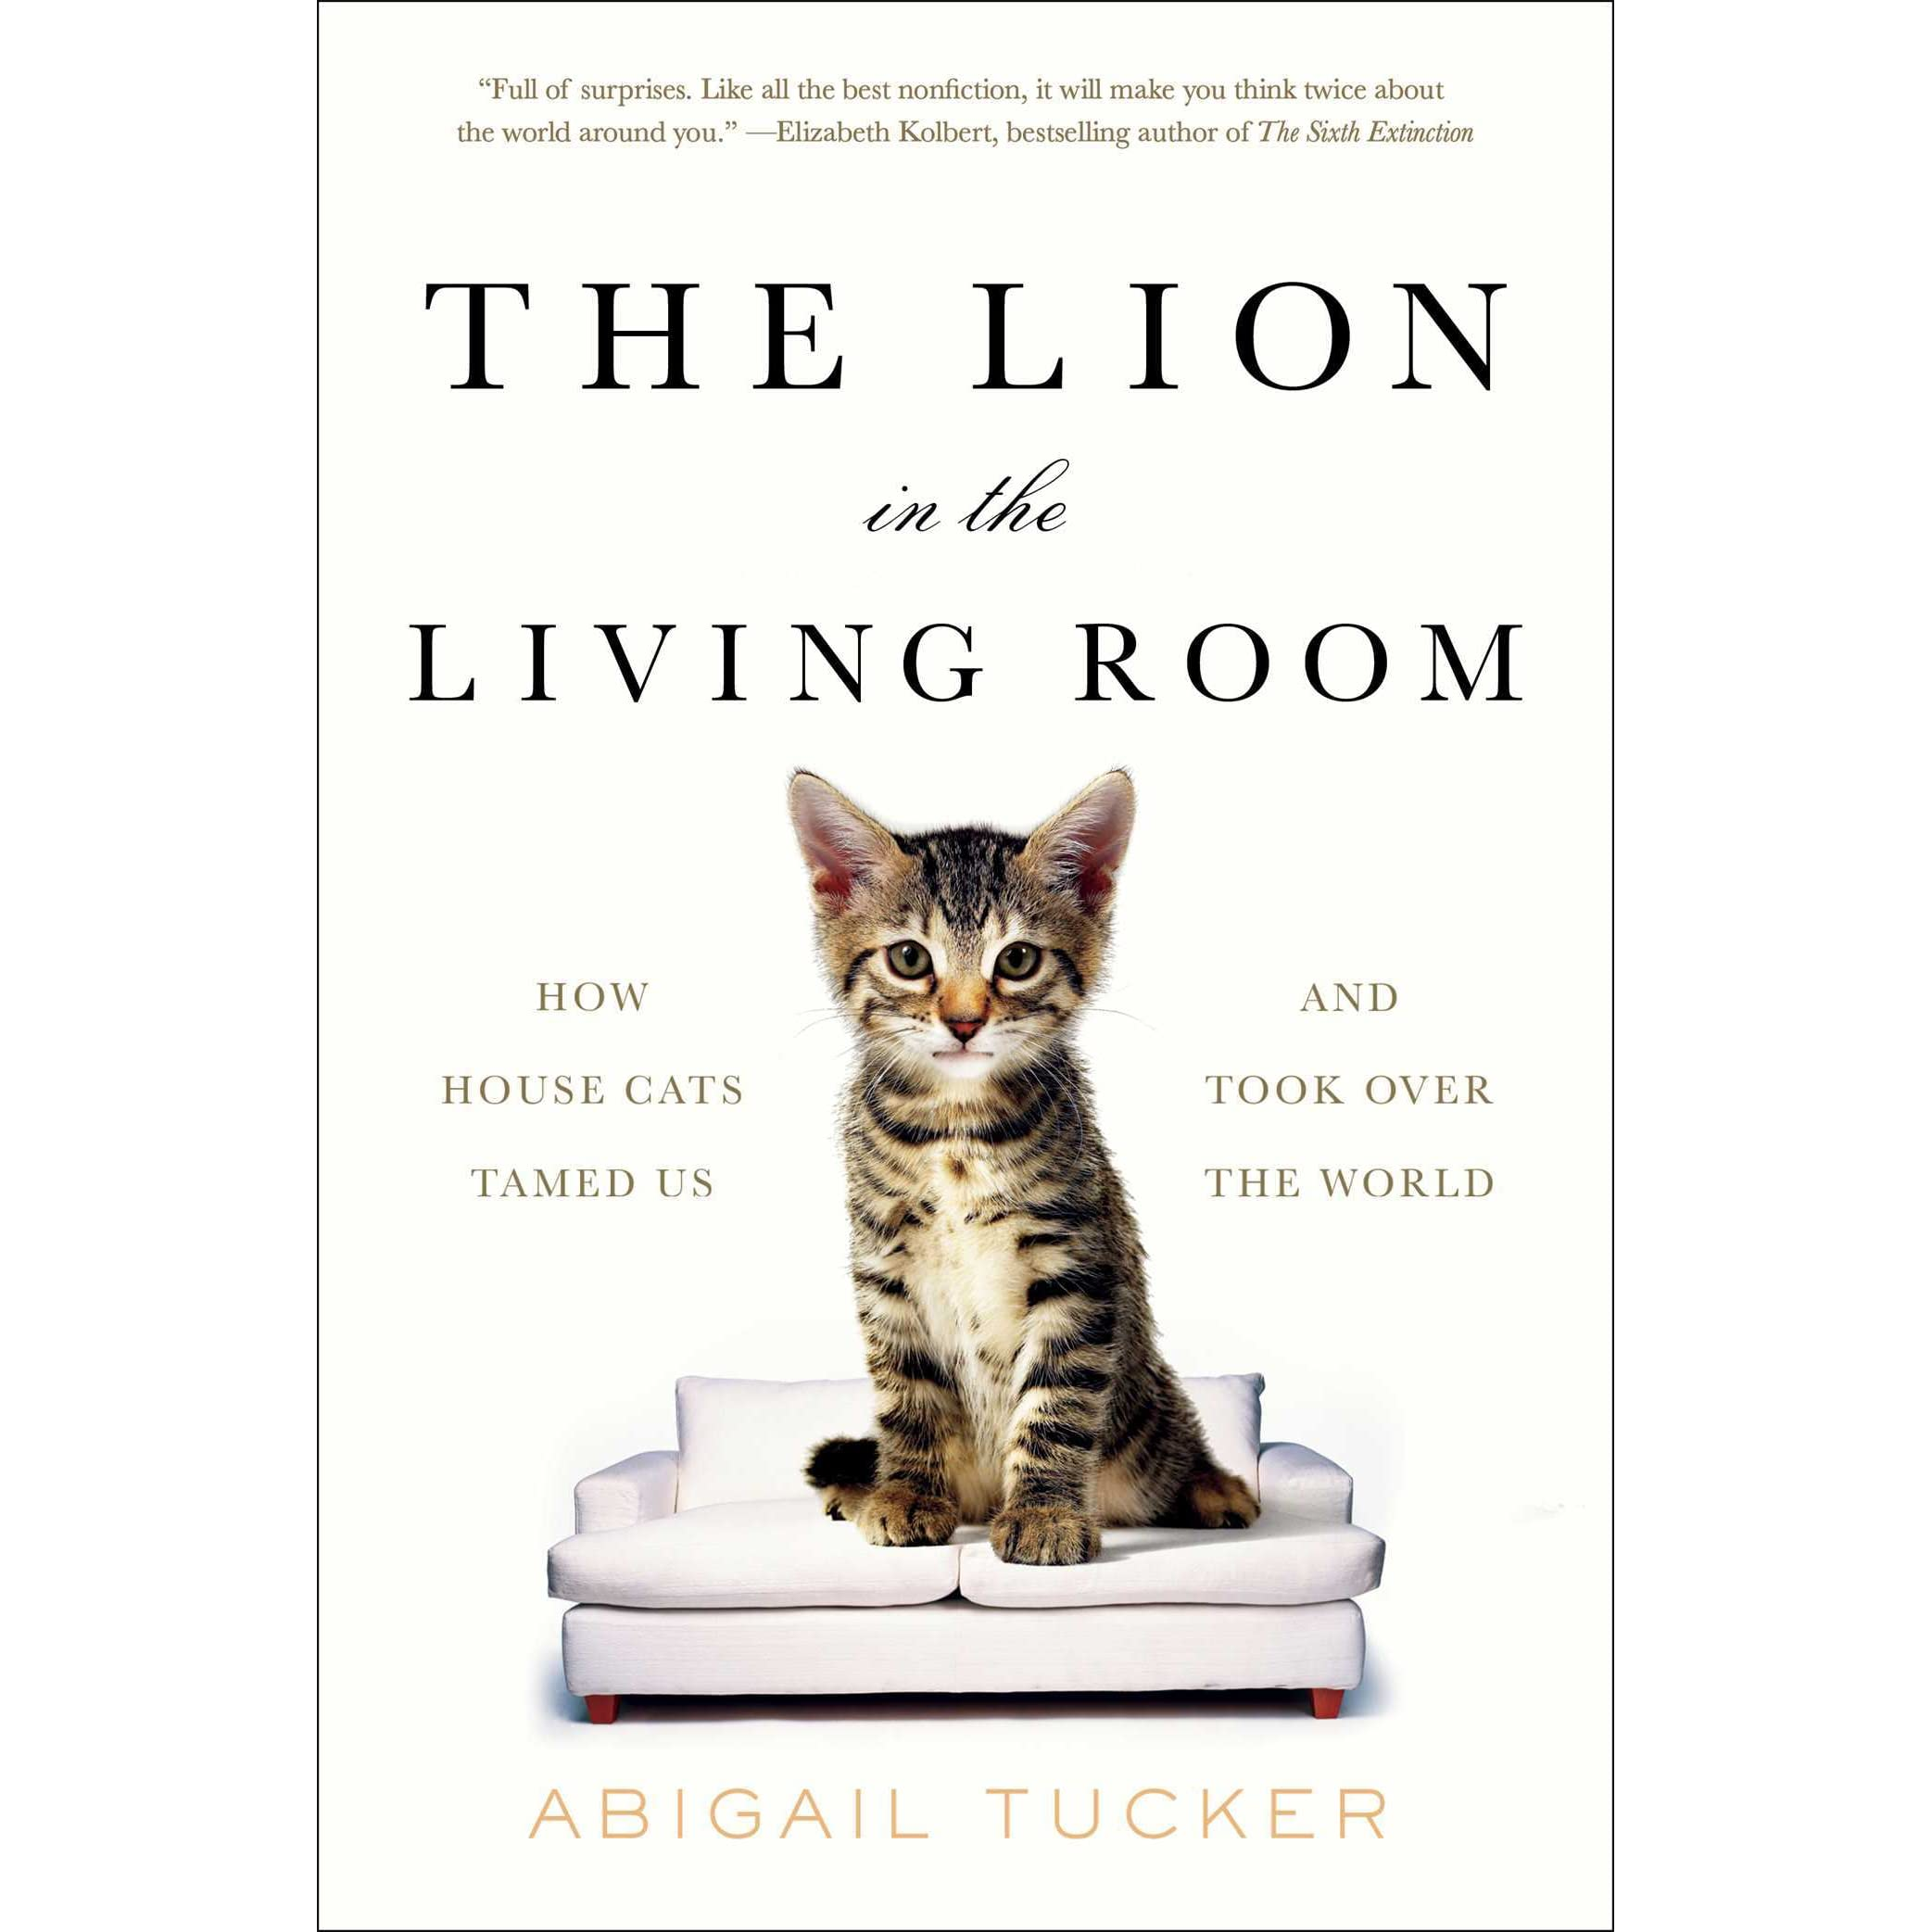 The Lion In Living Room How House Cats Tamed Us And Took Over World By Abigail Tucker